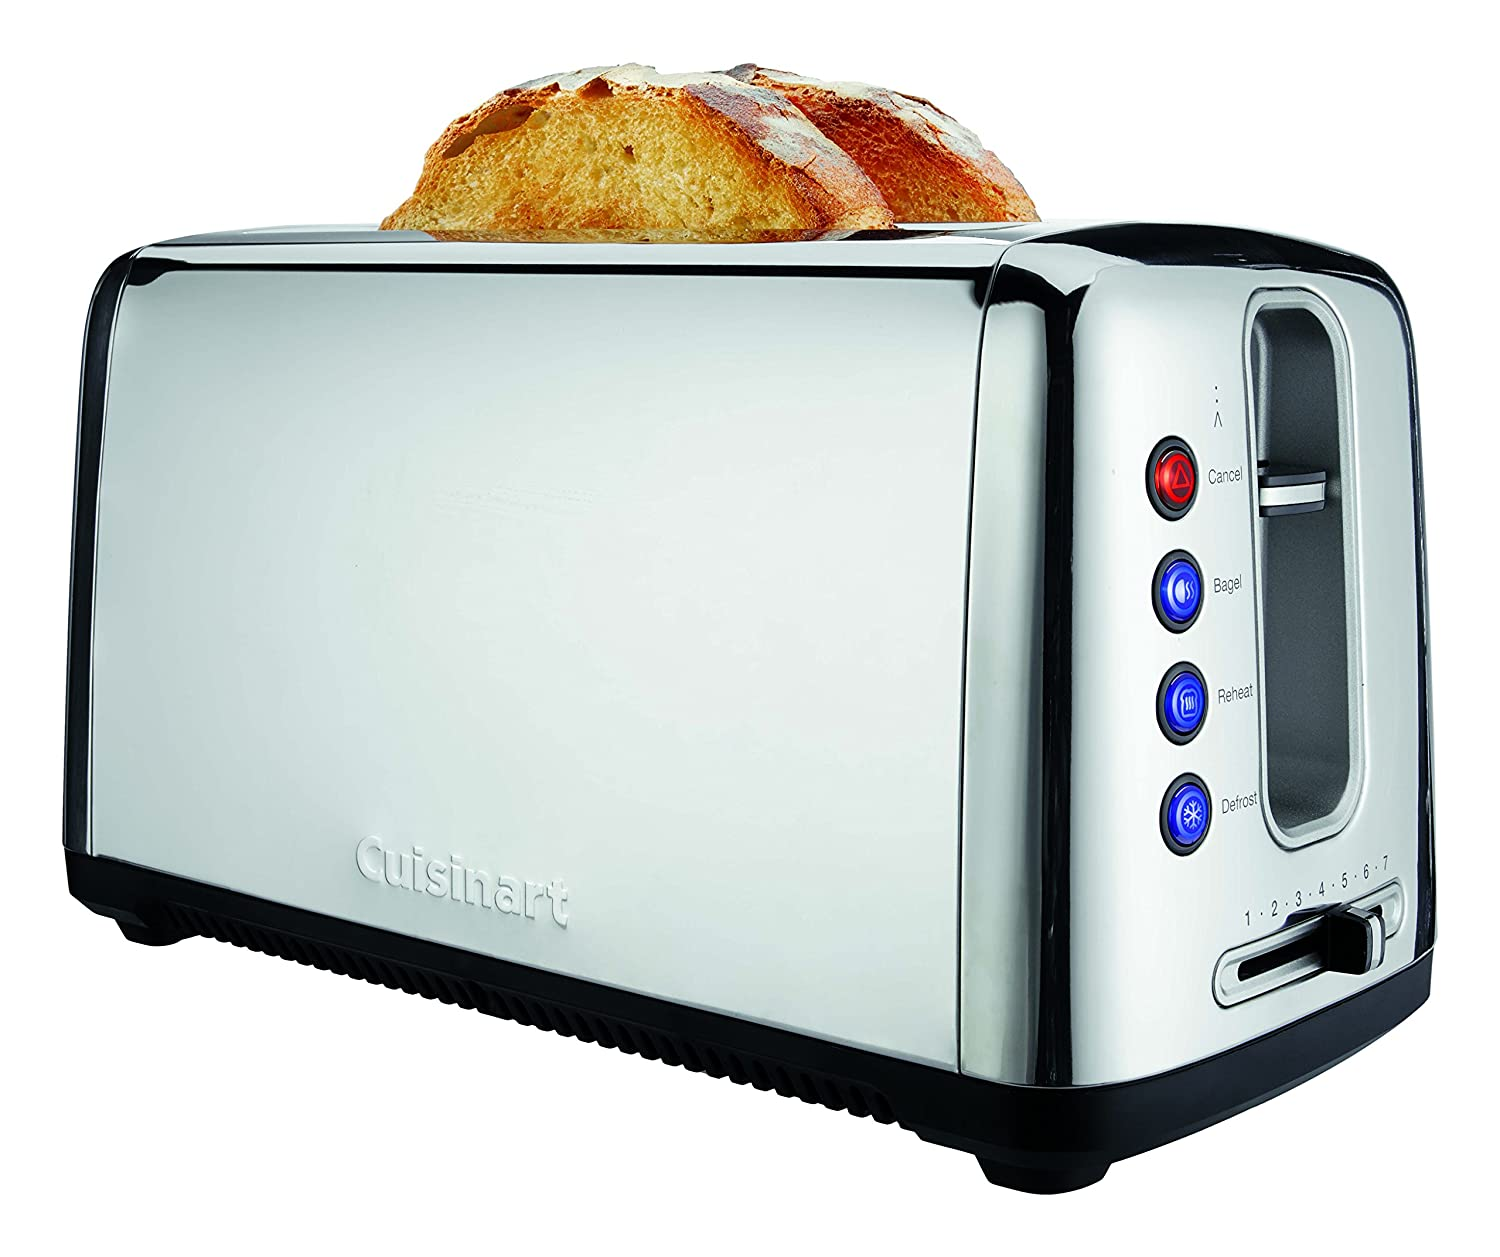 Cuisinart CPT-2400 086279117786 The Bakery Artisan Bread Toaster One Size Chrome